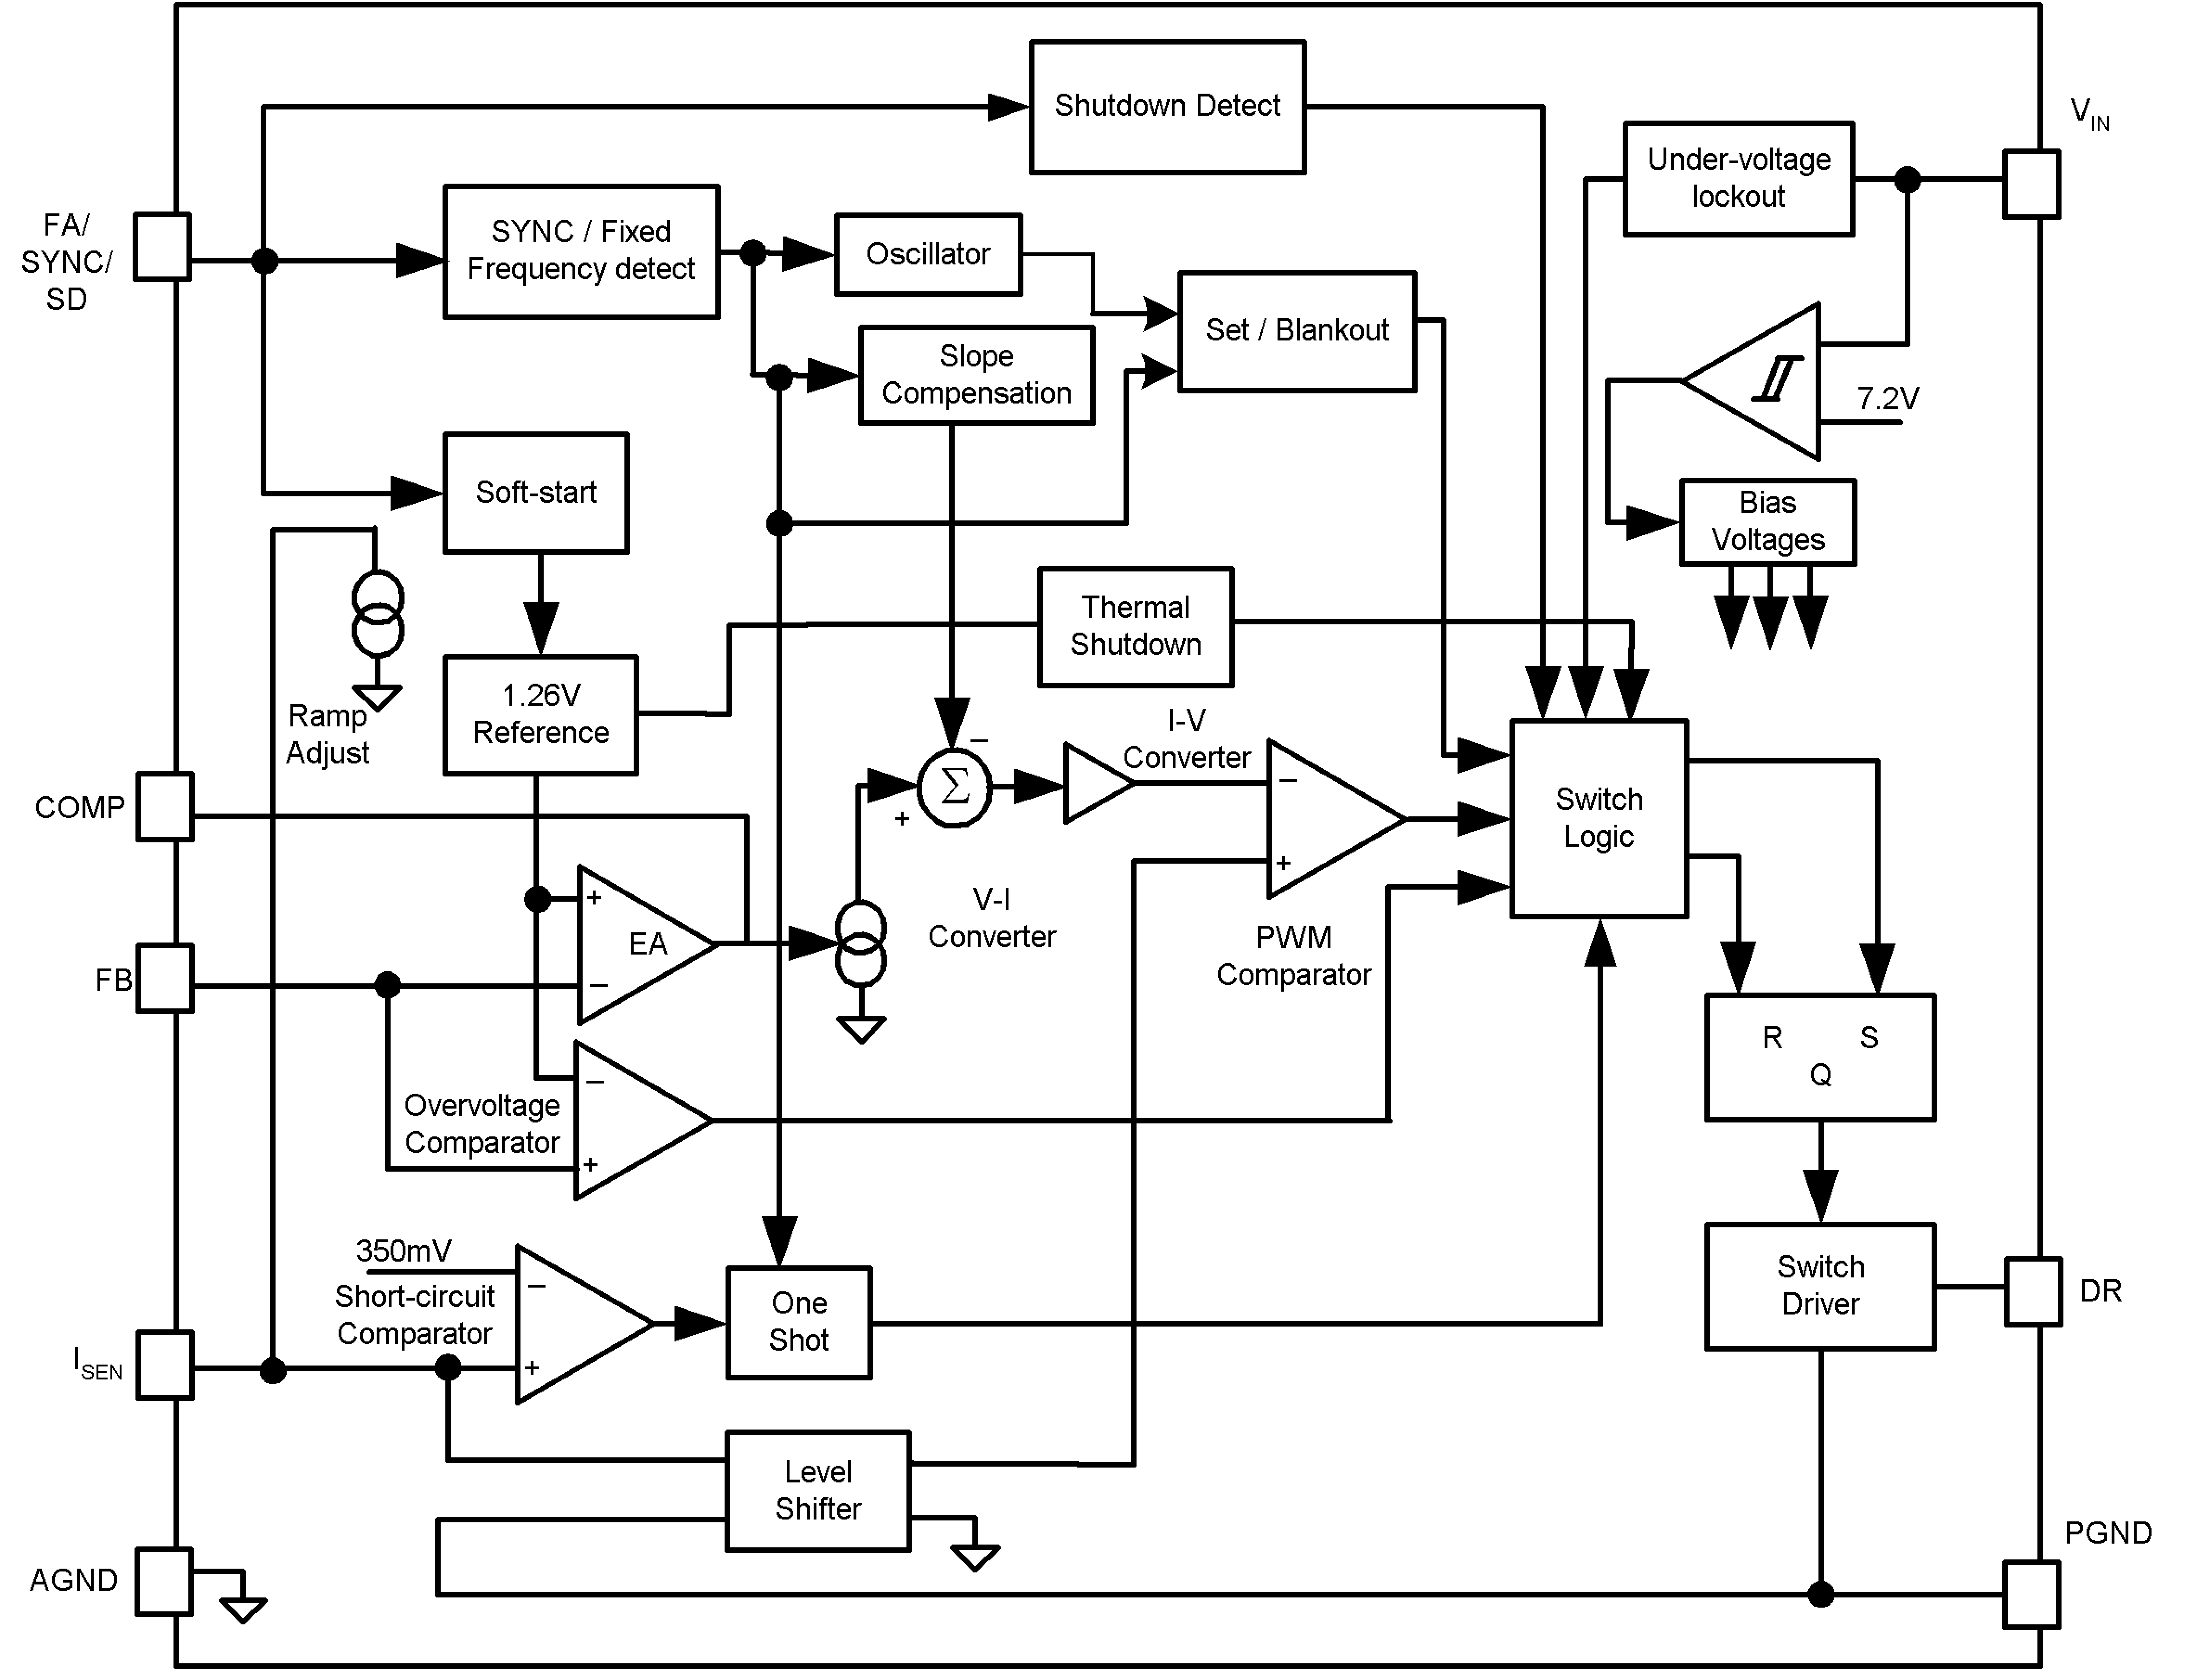 Lm3488 Current And A Latching Circuit That Controls The Gate Of Mosfet Lm3488boost Controller Sepic Block Diagram Q1